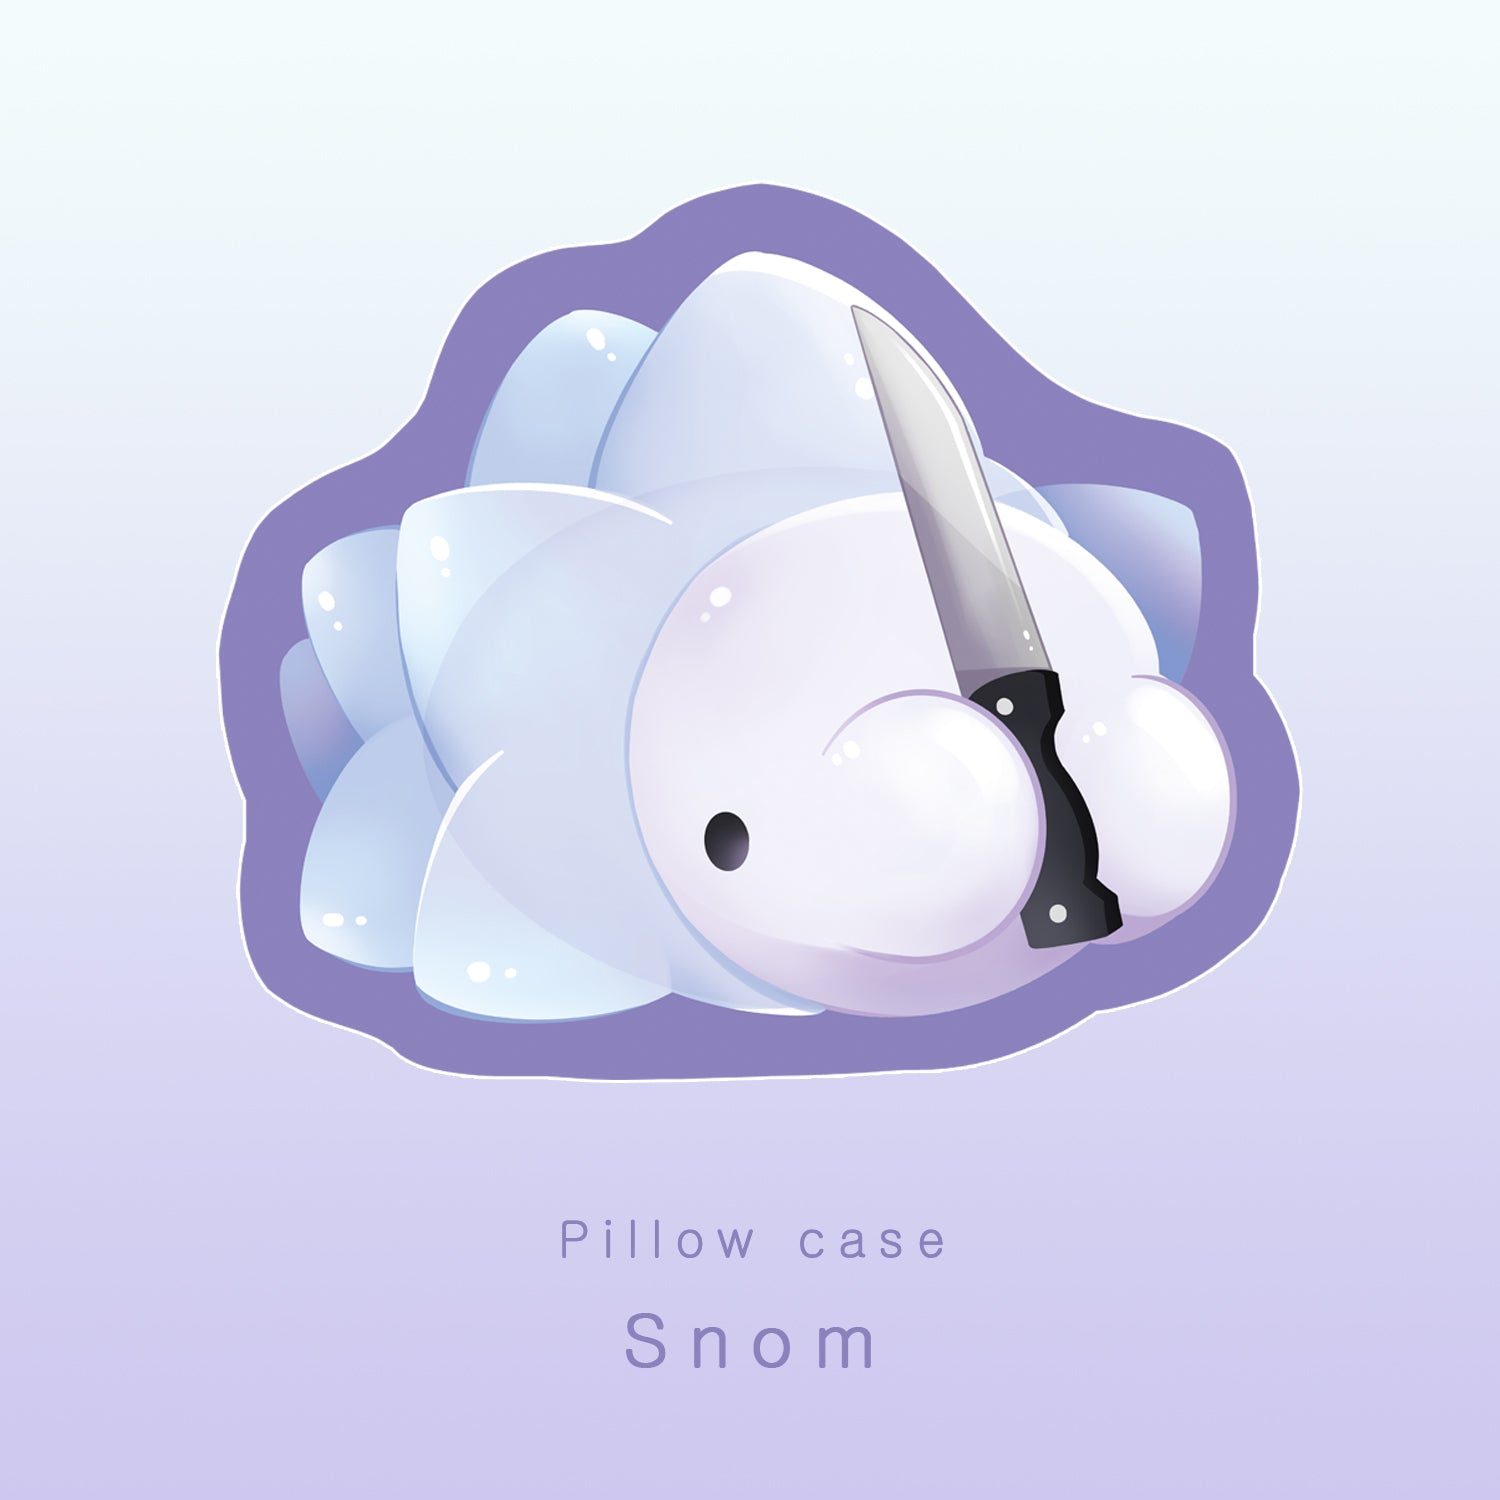 [Pokemon] Snom - pillow case